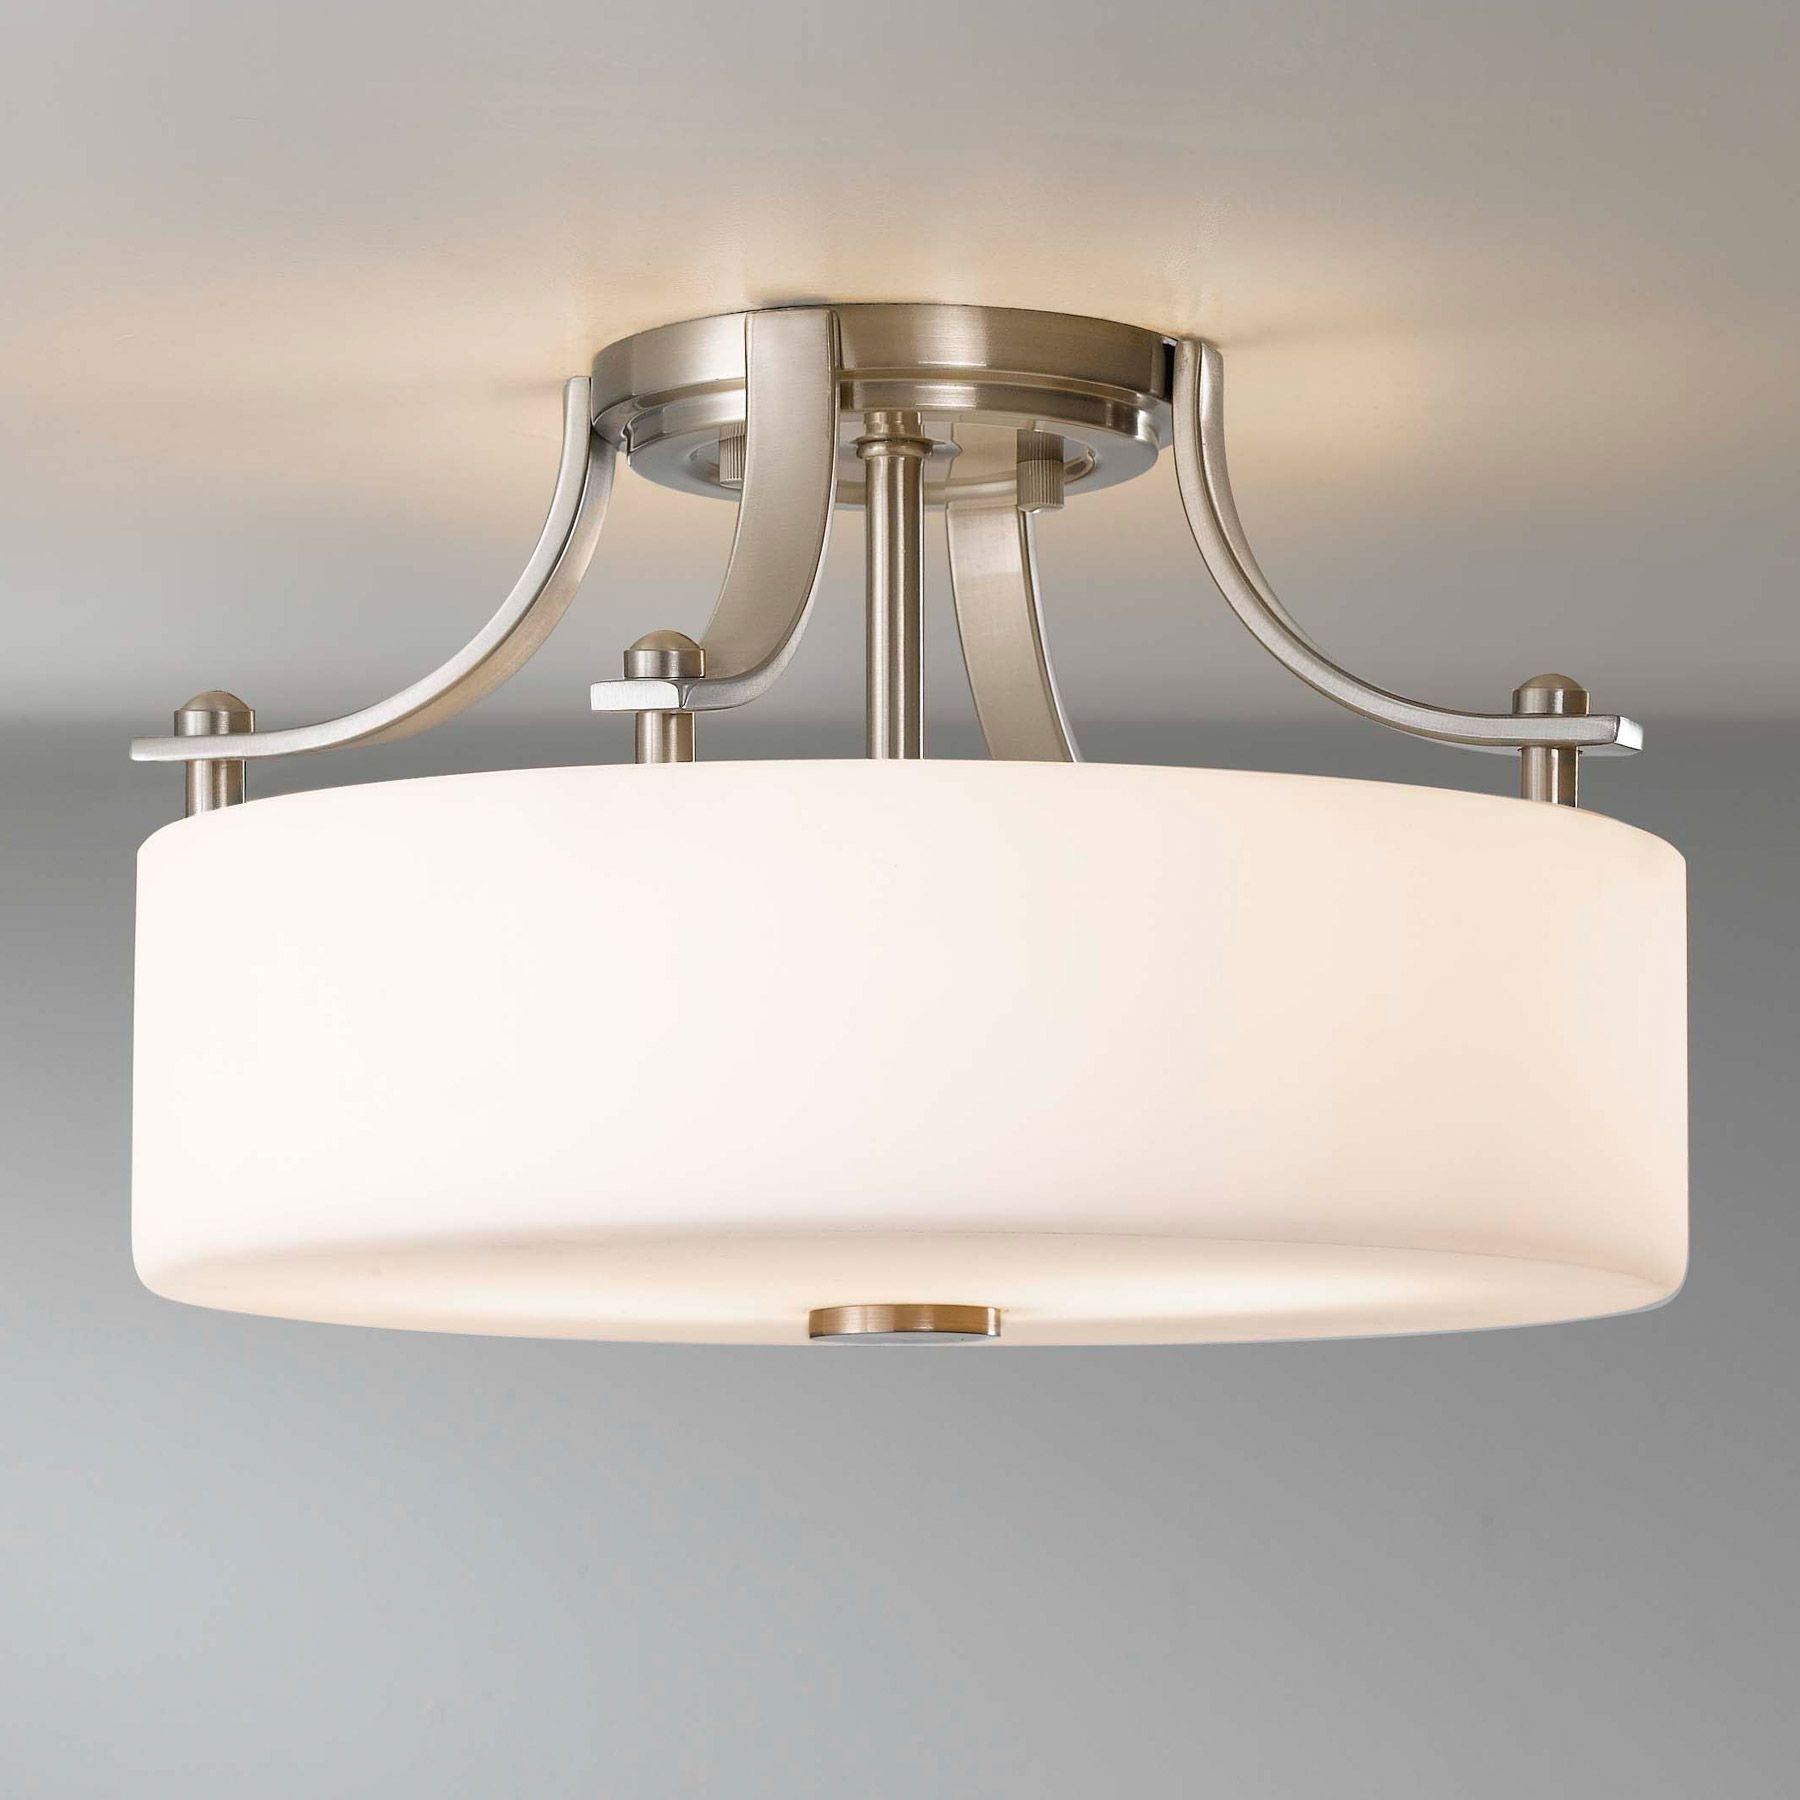 Close To Ceiling Lights: White FlushMount Light Fixture,Lighting